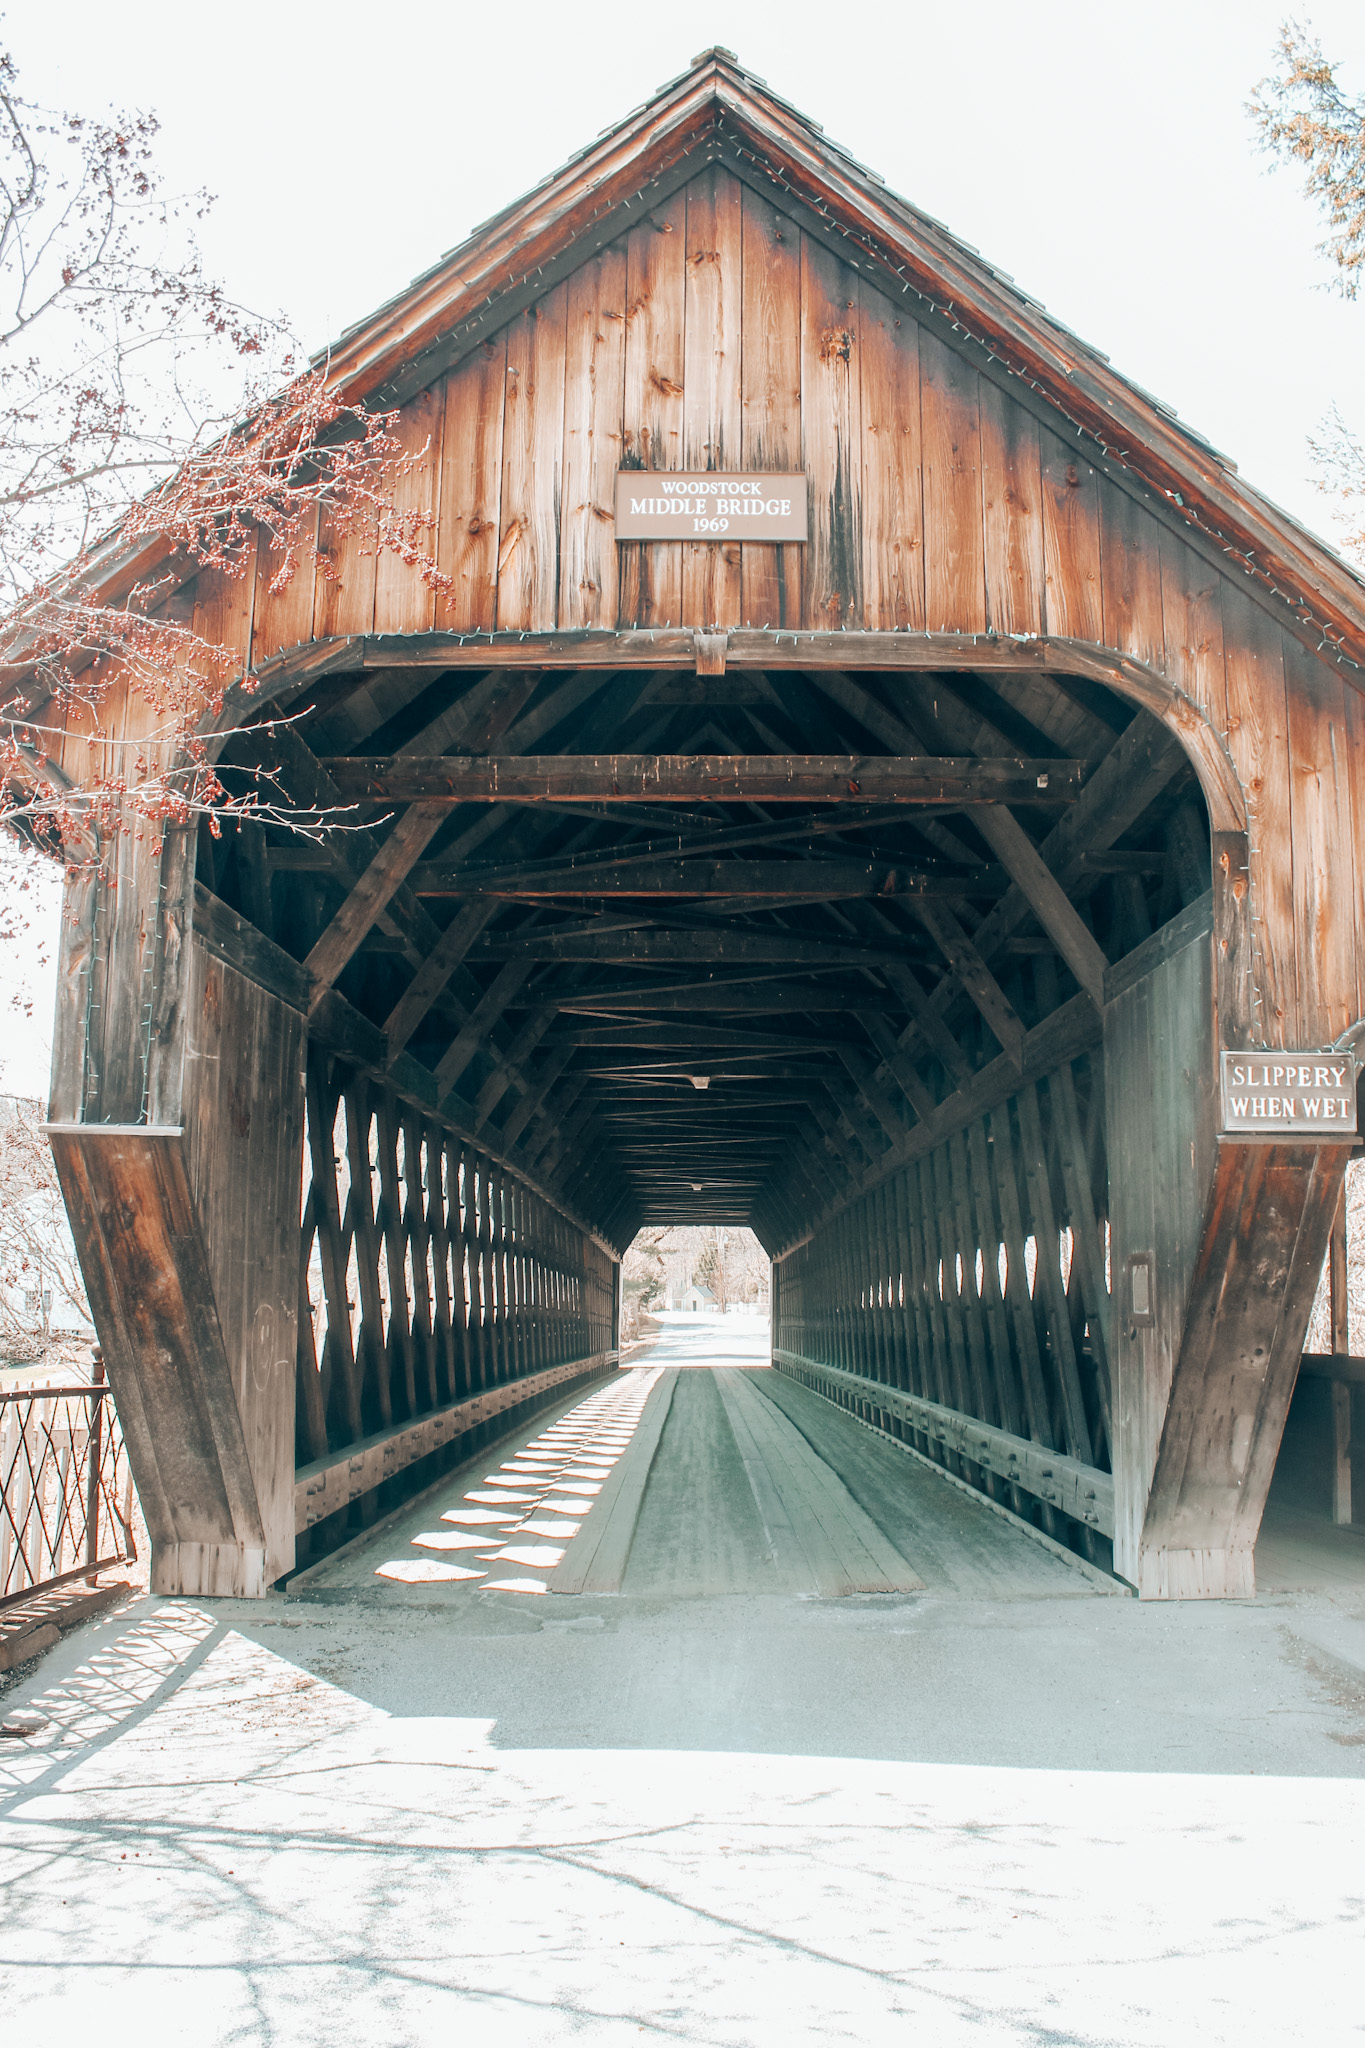 One of my favorite things about the holidays in New England...Woodstock's famous covered bridge